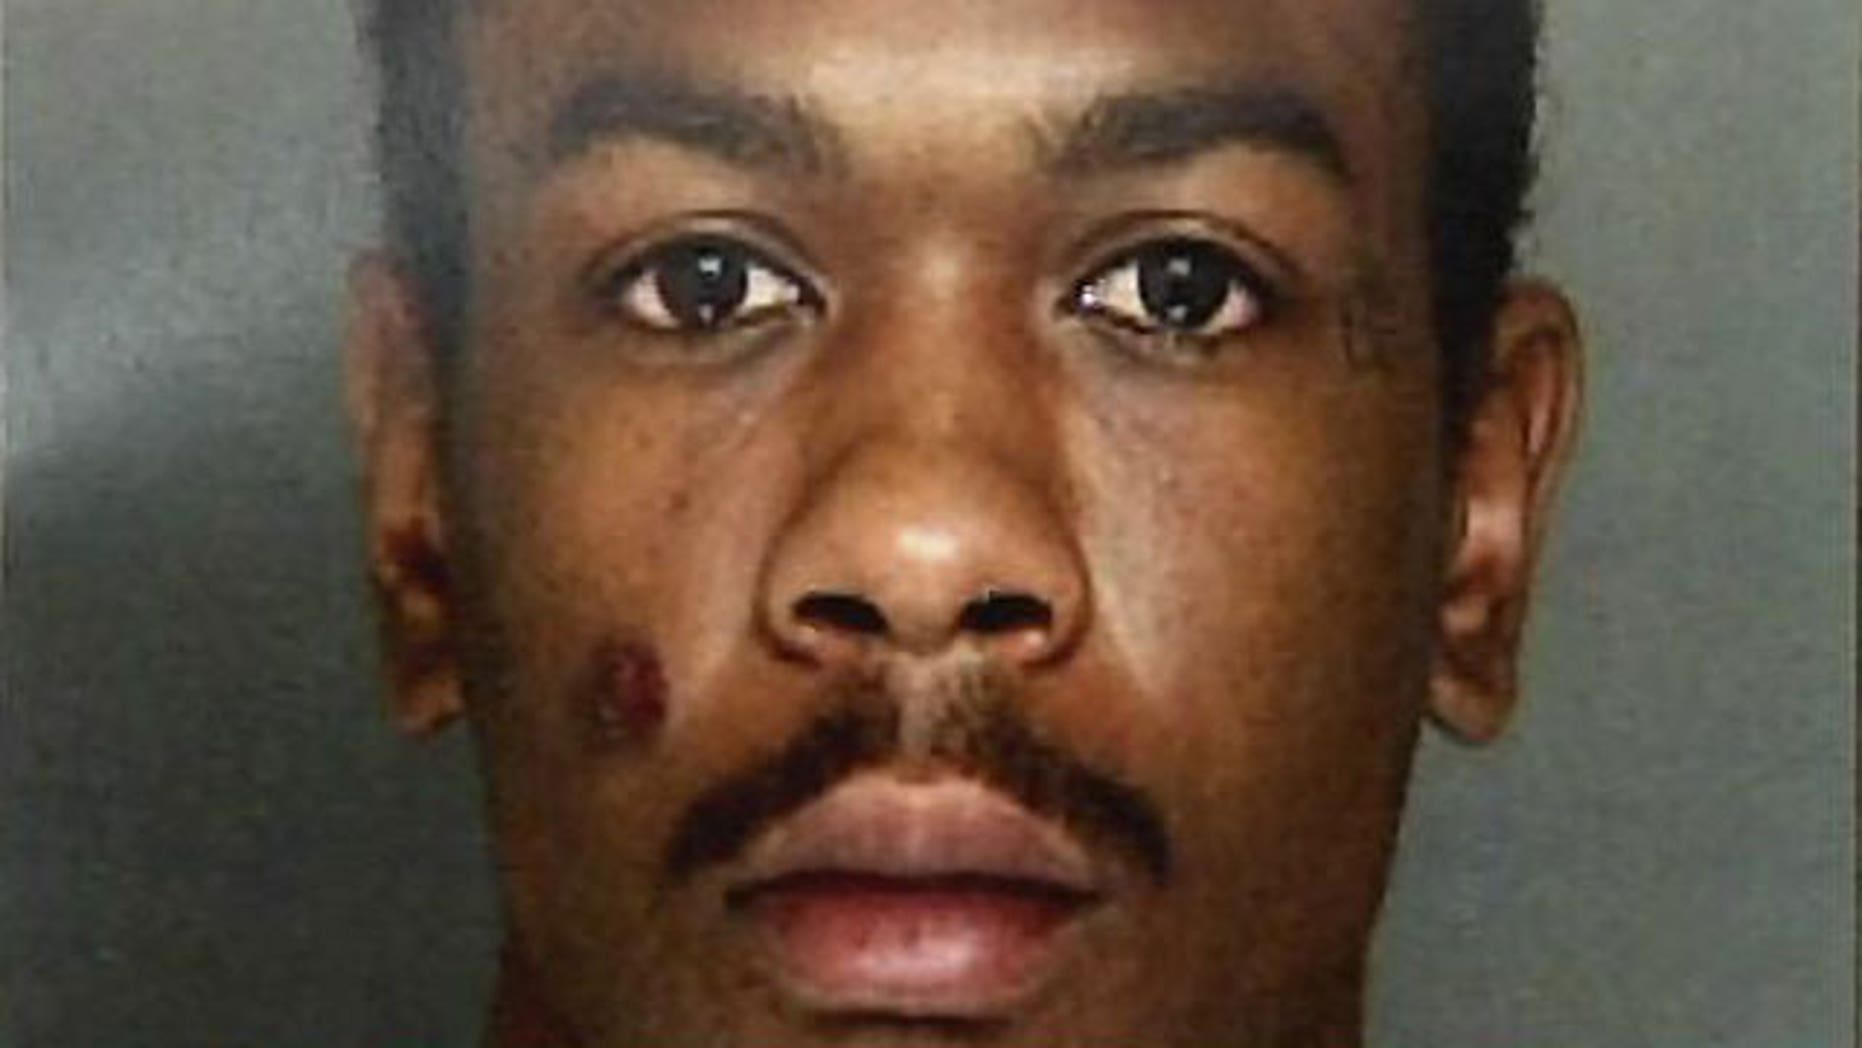 Pa. police are searching for an accused killer who was mistakenly released from prison.